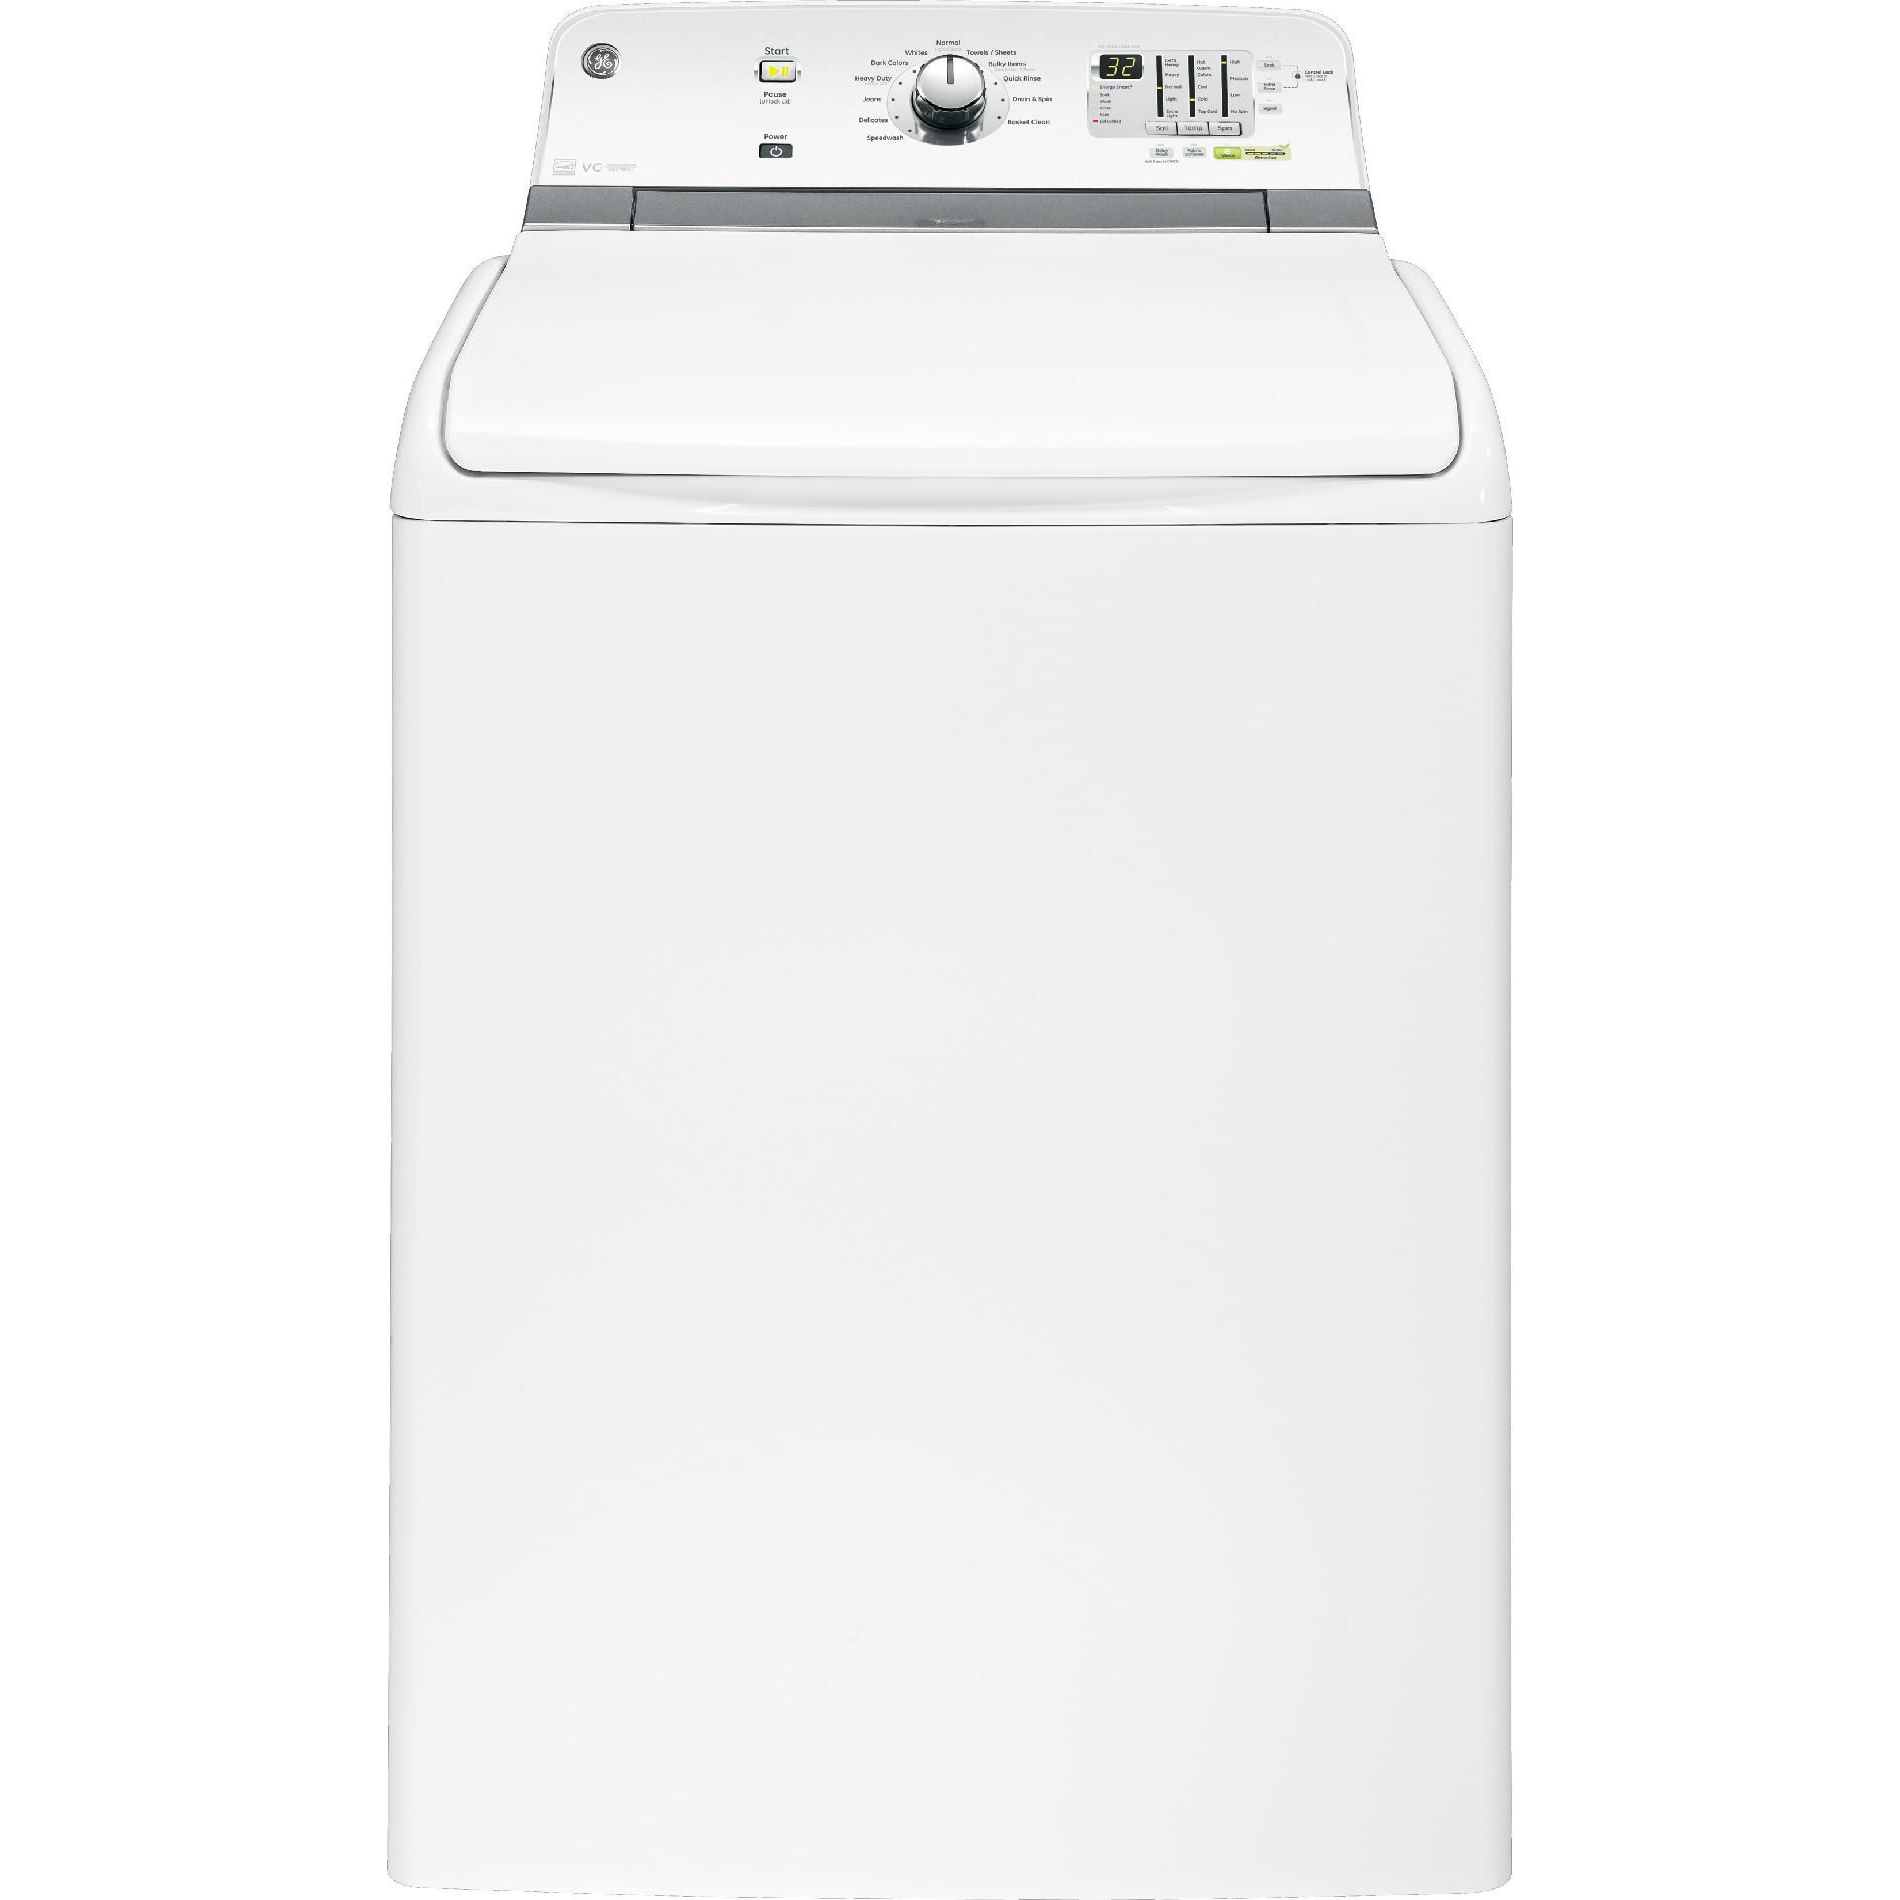 4-6-cu-ft-High-Efficiency-Top-Load-Washer-w-Stainless-Steel-Basket-White